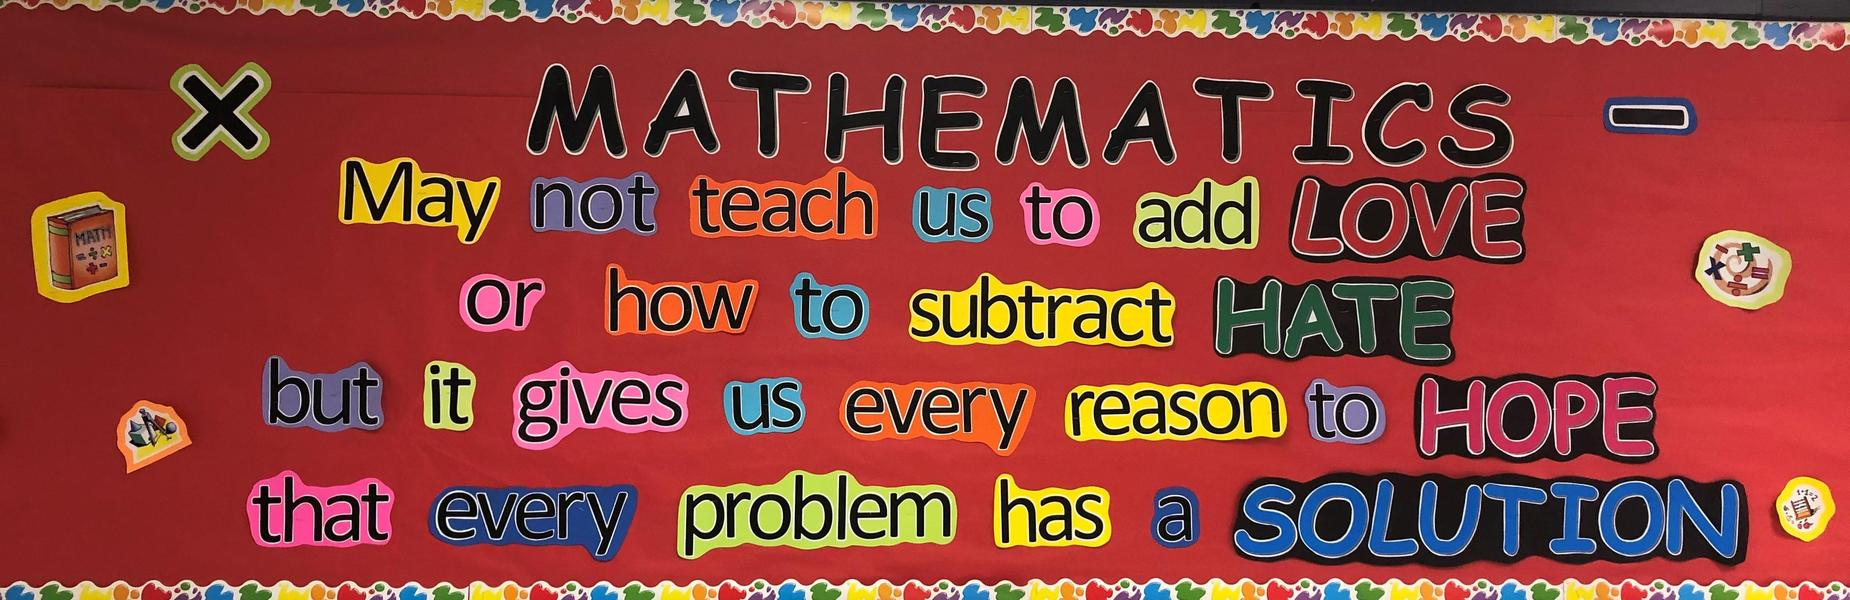 Photo of mathematics bulletin board.